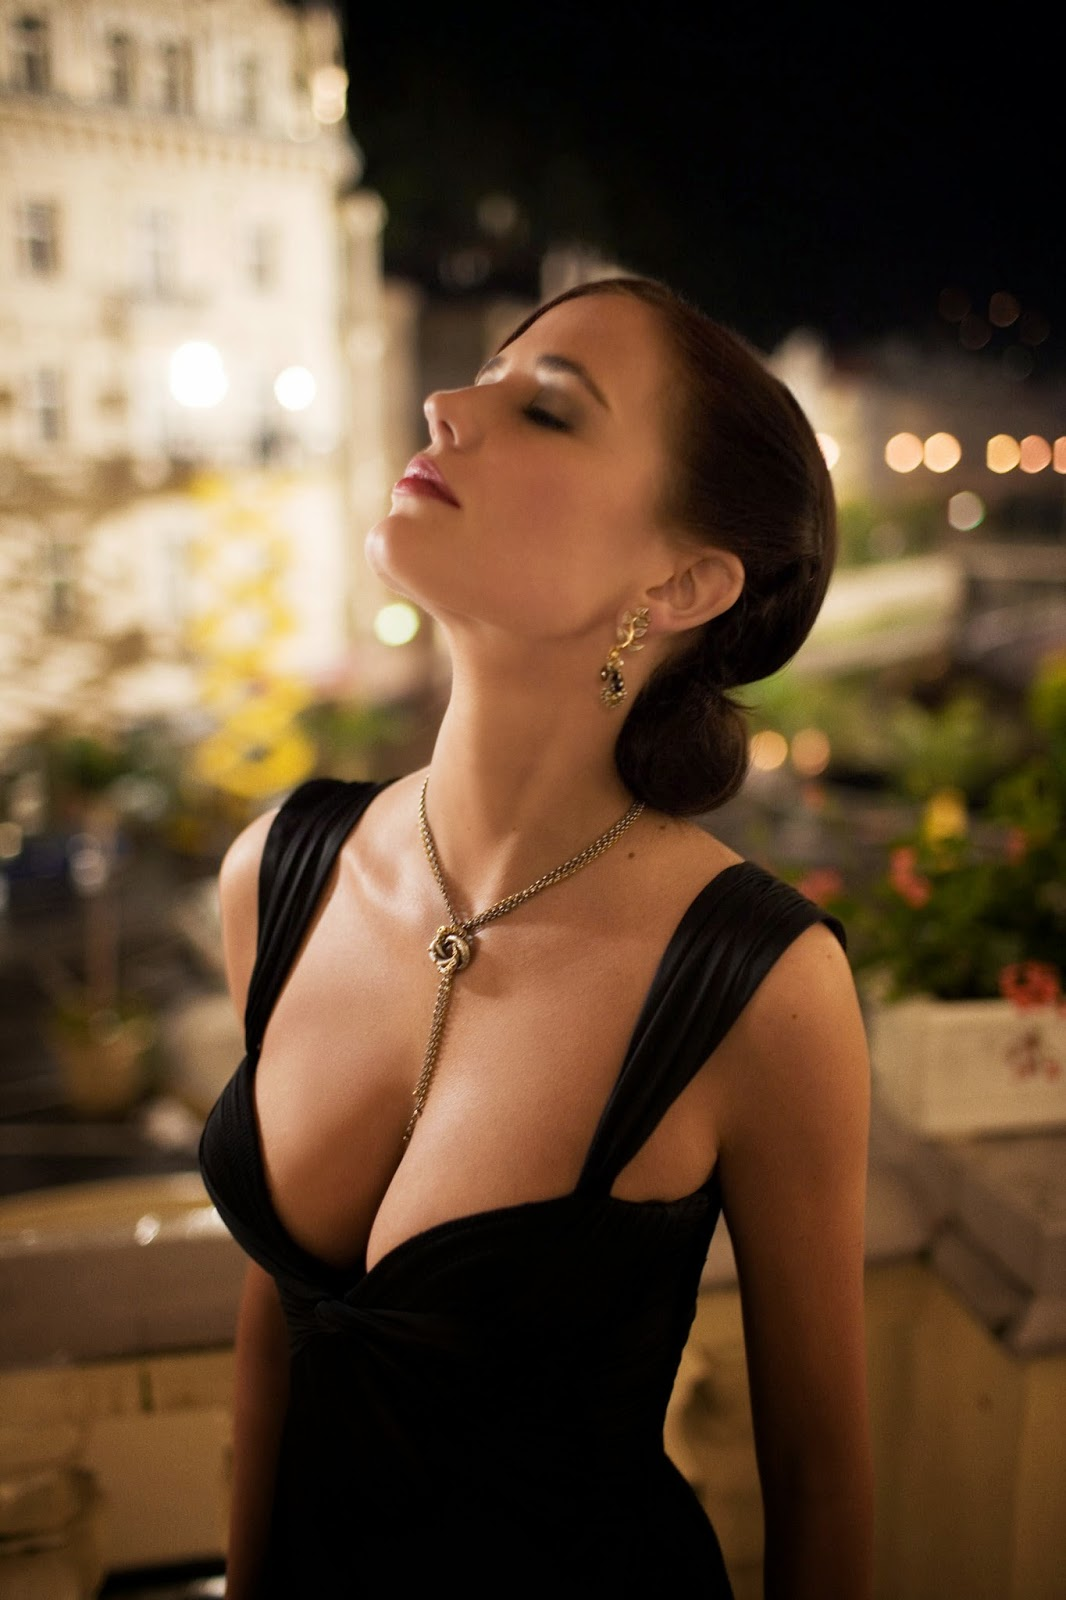 casino royale free online movie sitzling hot